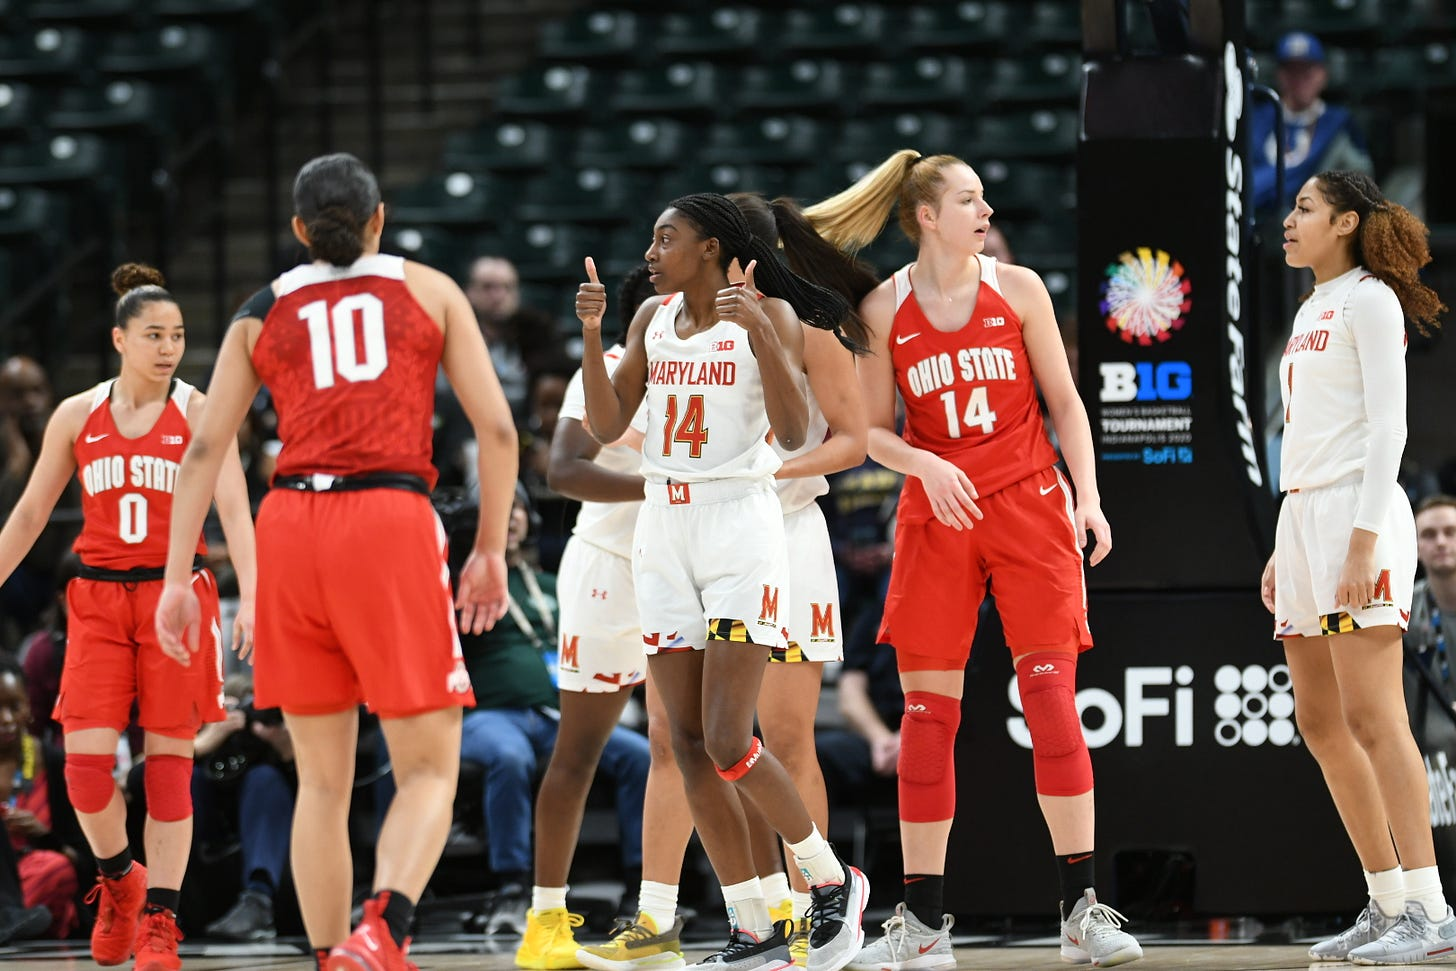 Maryland basketball player Diamond Miller gives two thumbs up during a game against Ohio State.